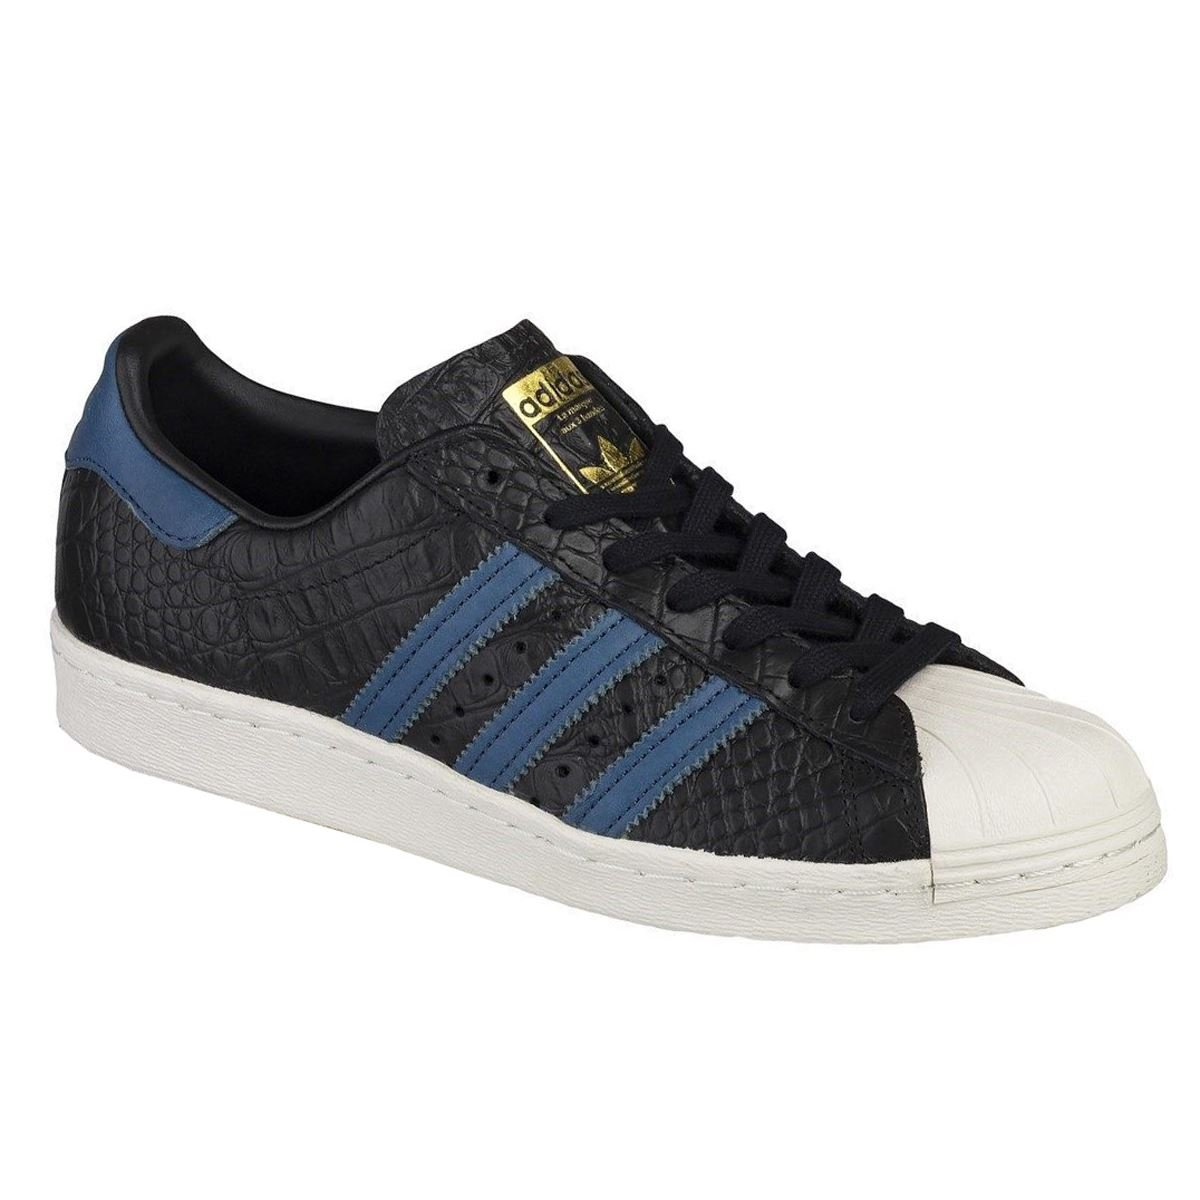 adidas Mens Superstar 80s Black Blue Leather Trainers 40 EU